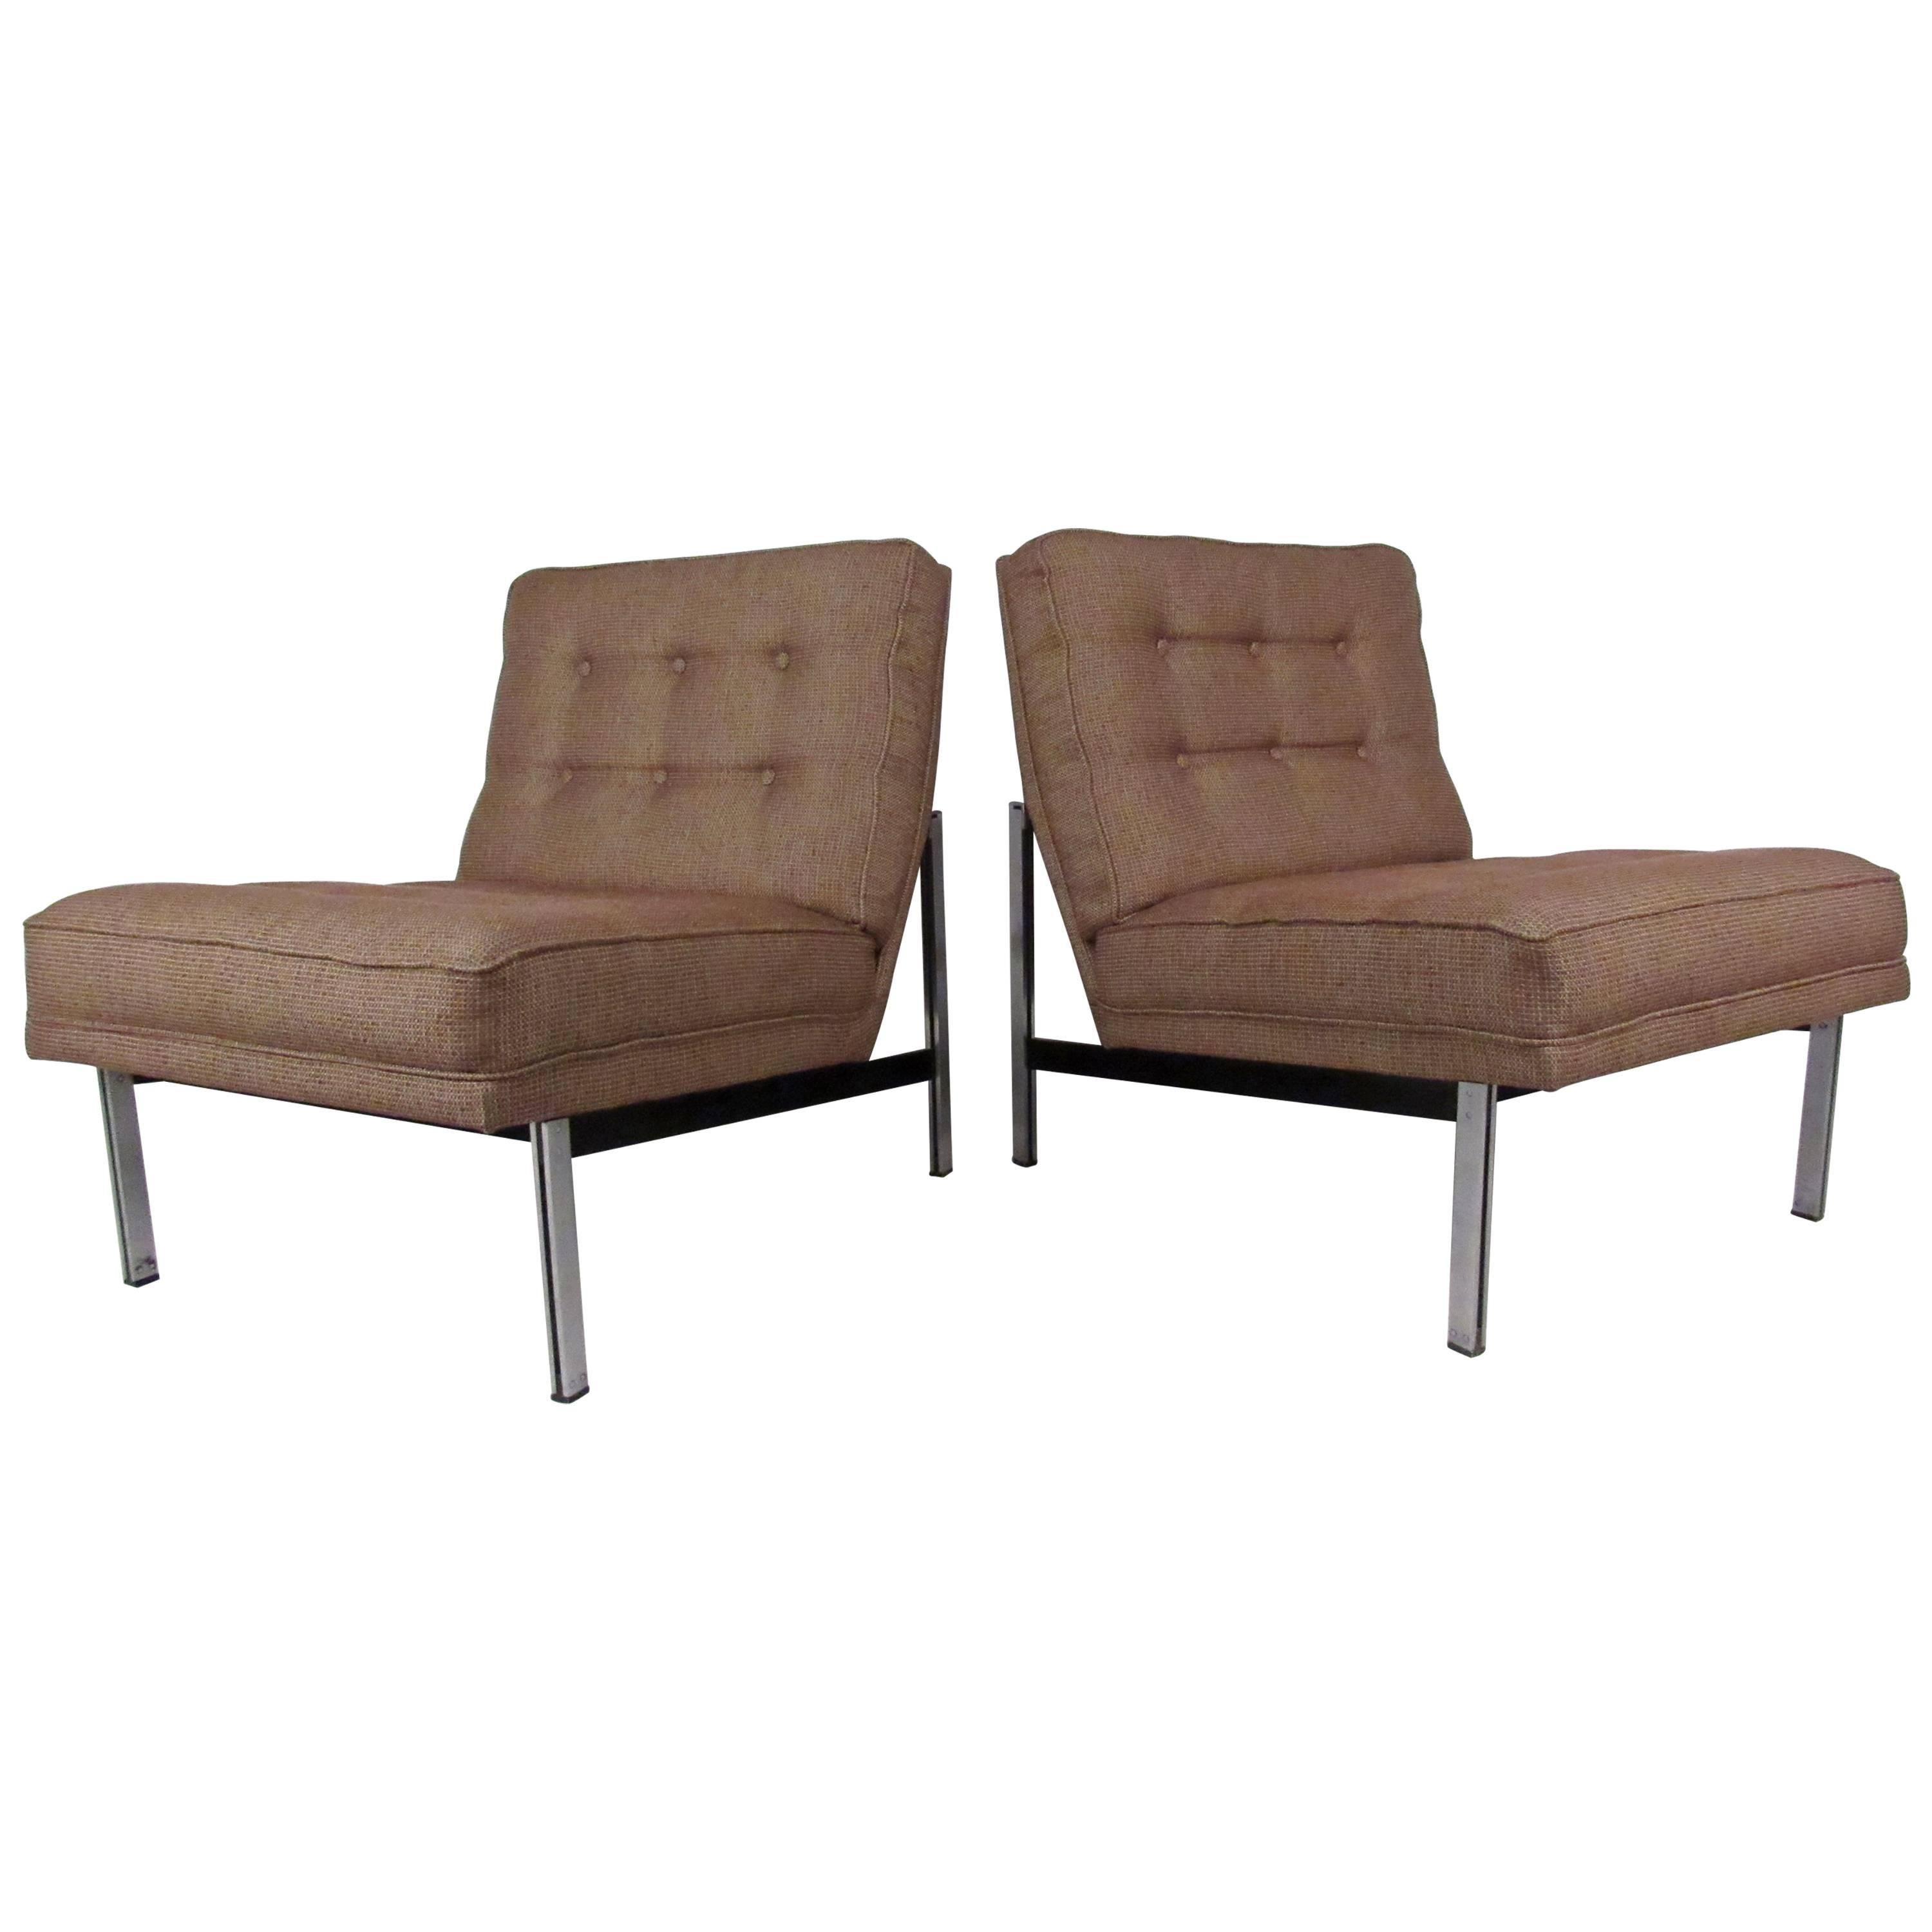 "Mid-Century Florence Knoll ""Parallel Bar"" Slipper Chairs"